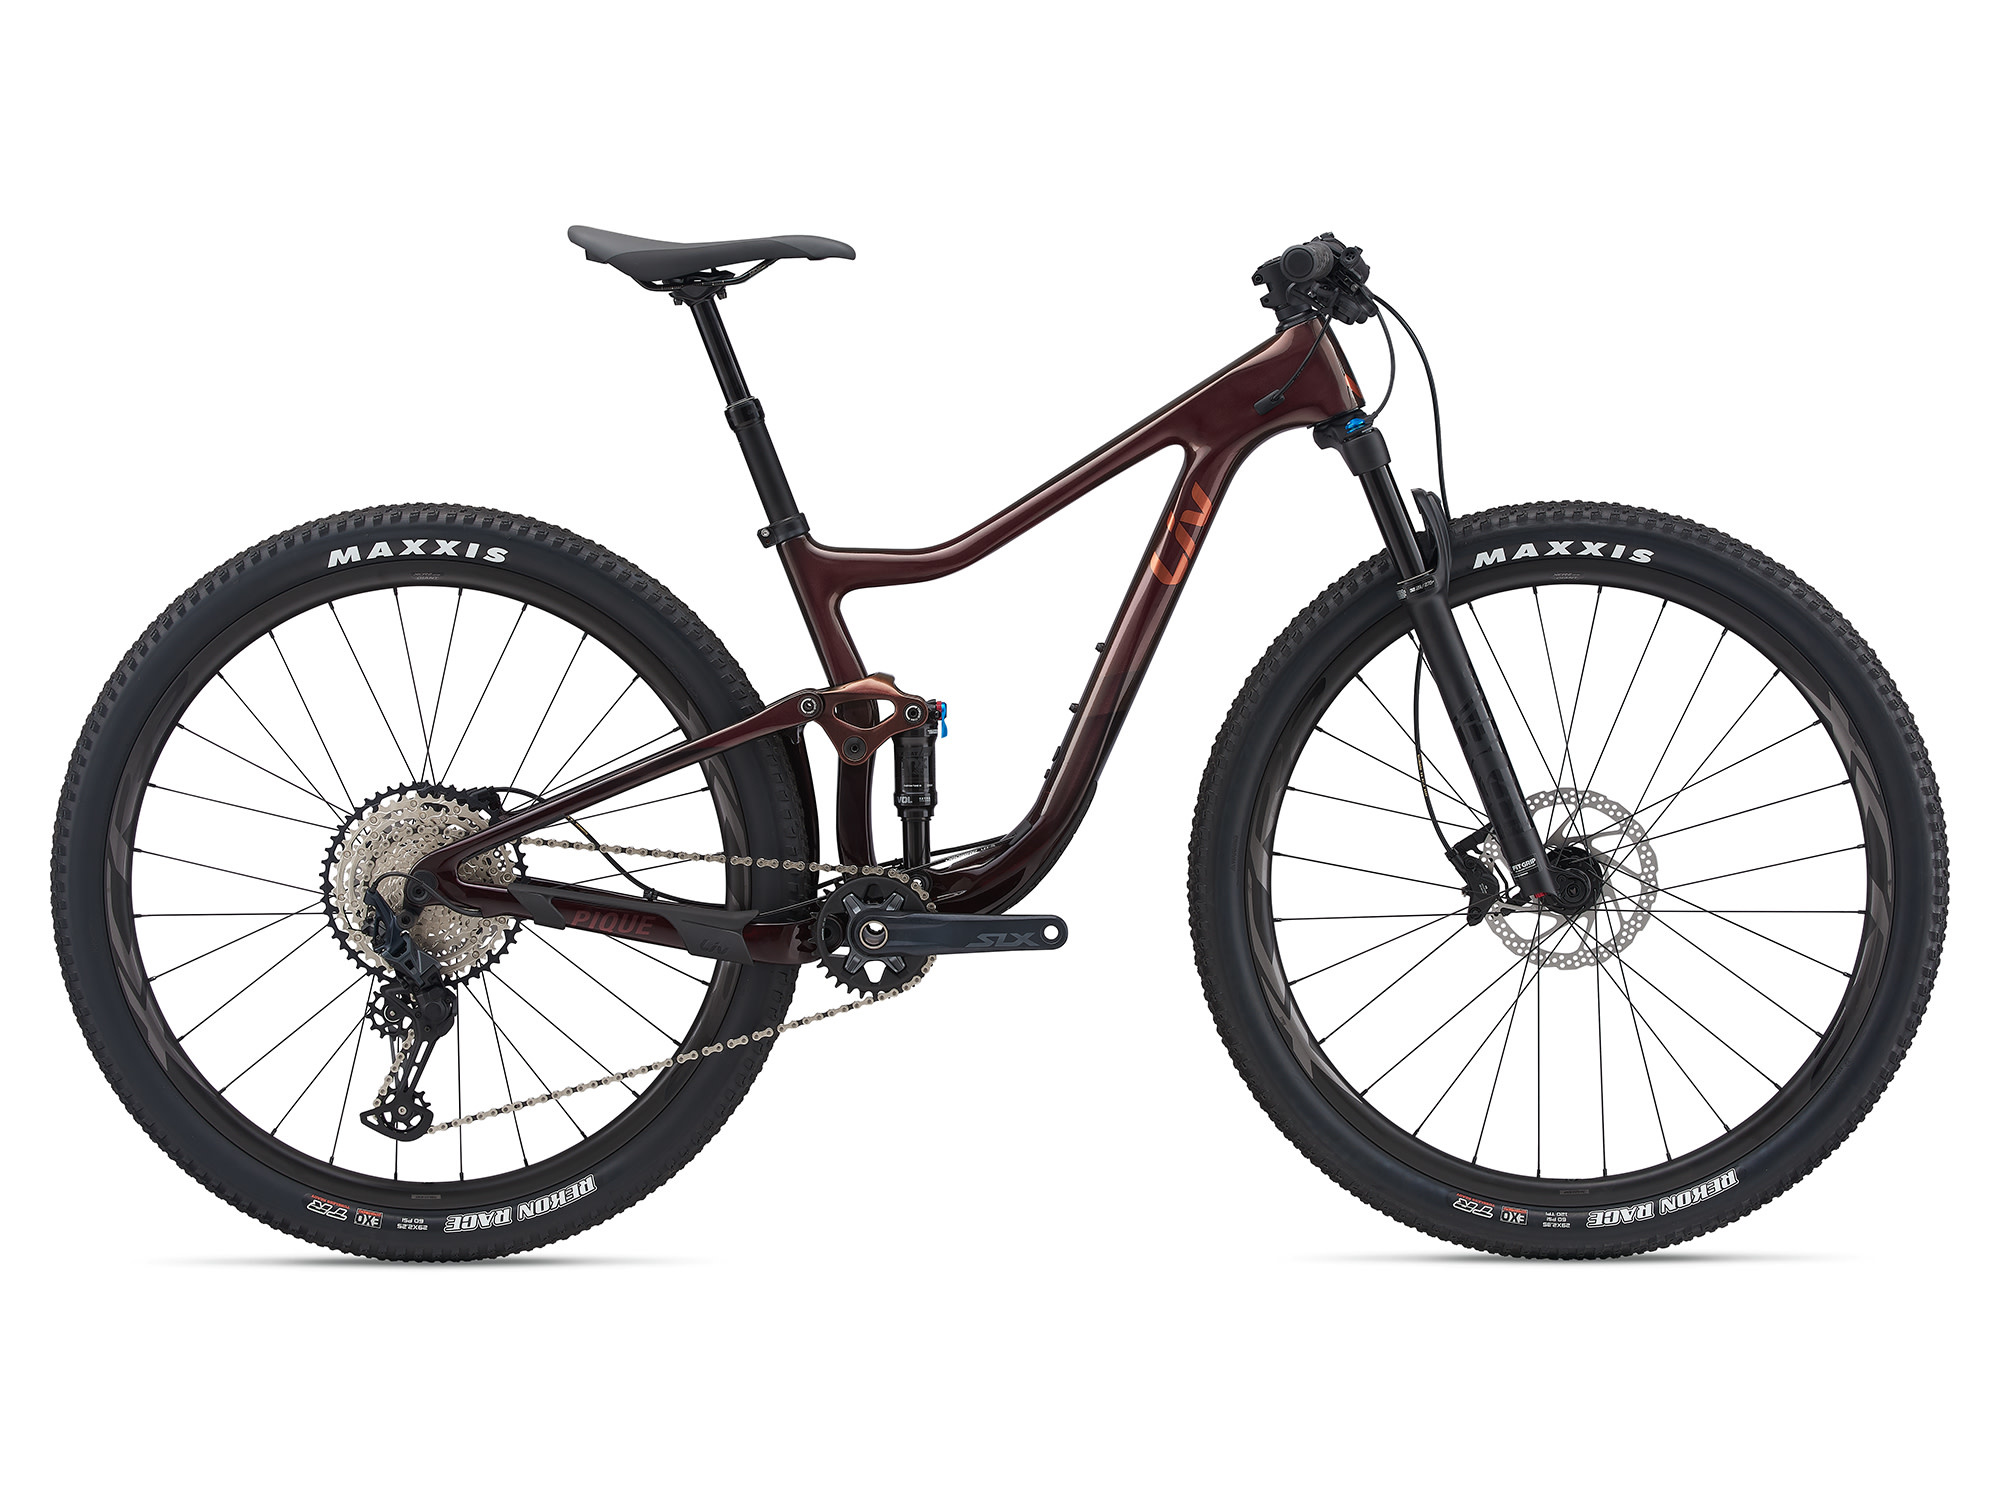 2021 Pique Advanced Pro 29 2